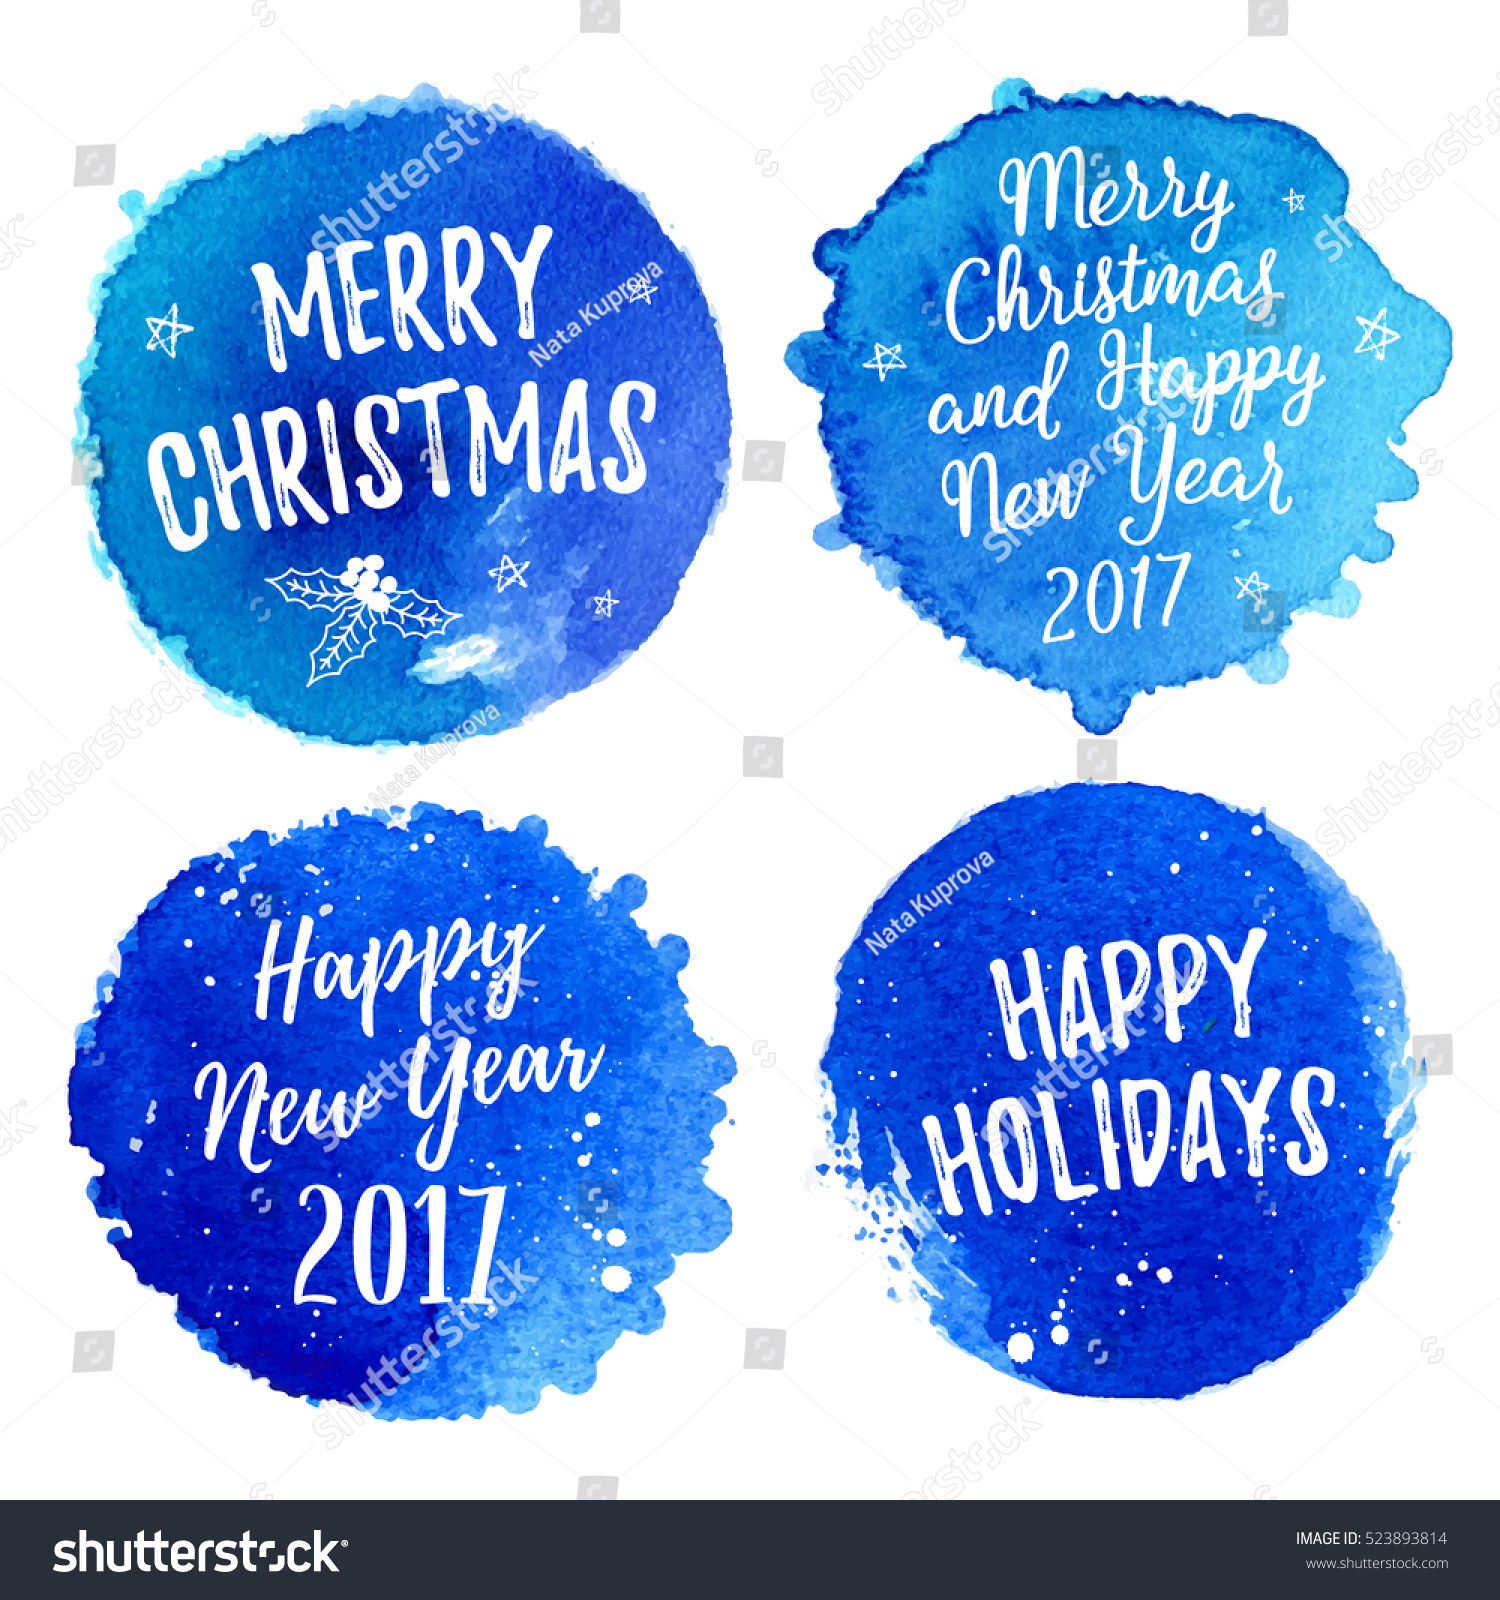 Merry Christmas Happy Holidays Happy New Stock Vector 523893814